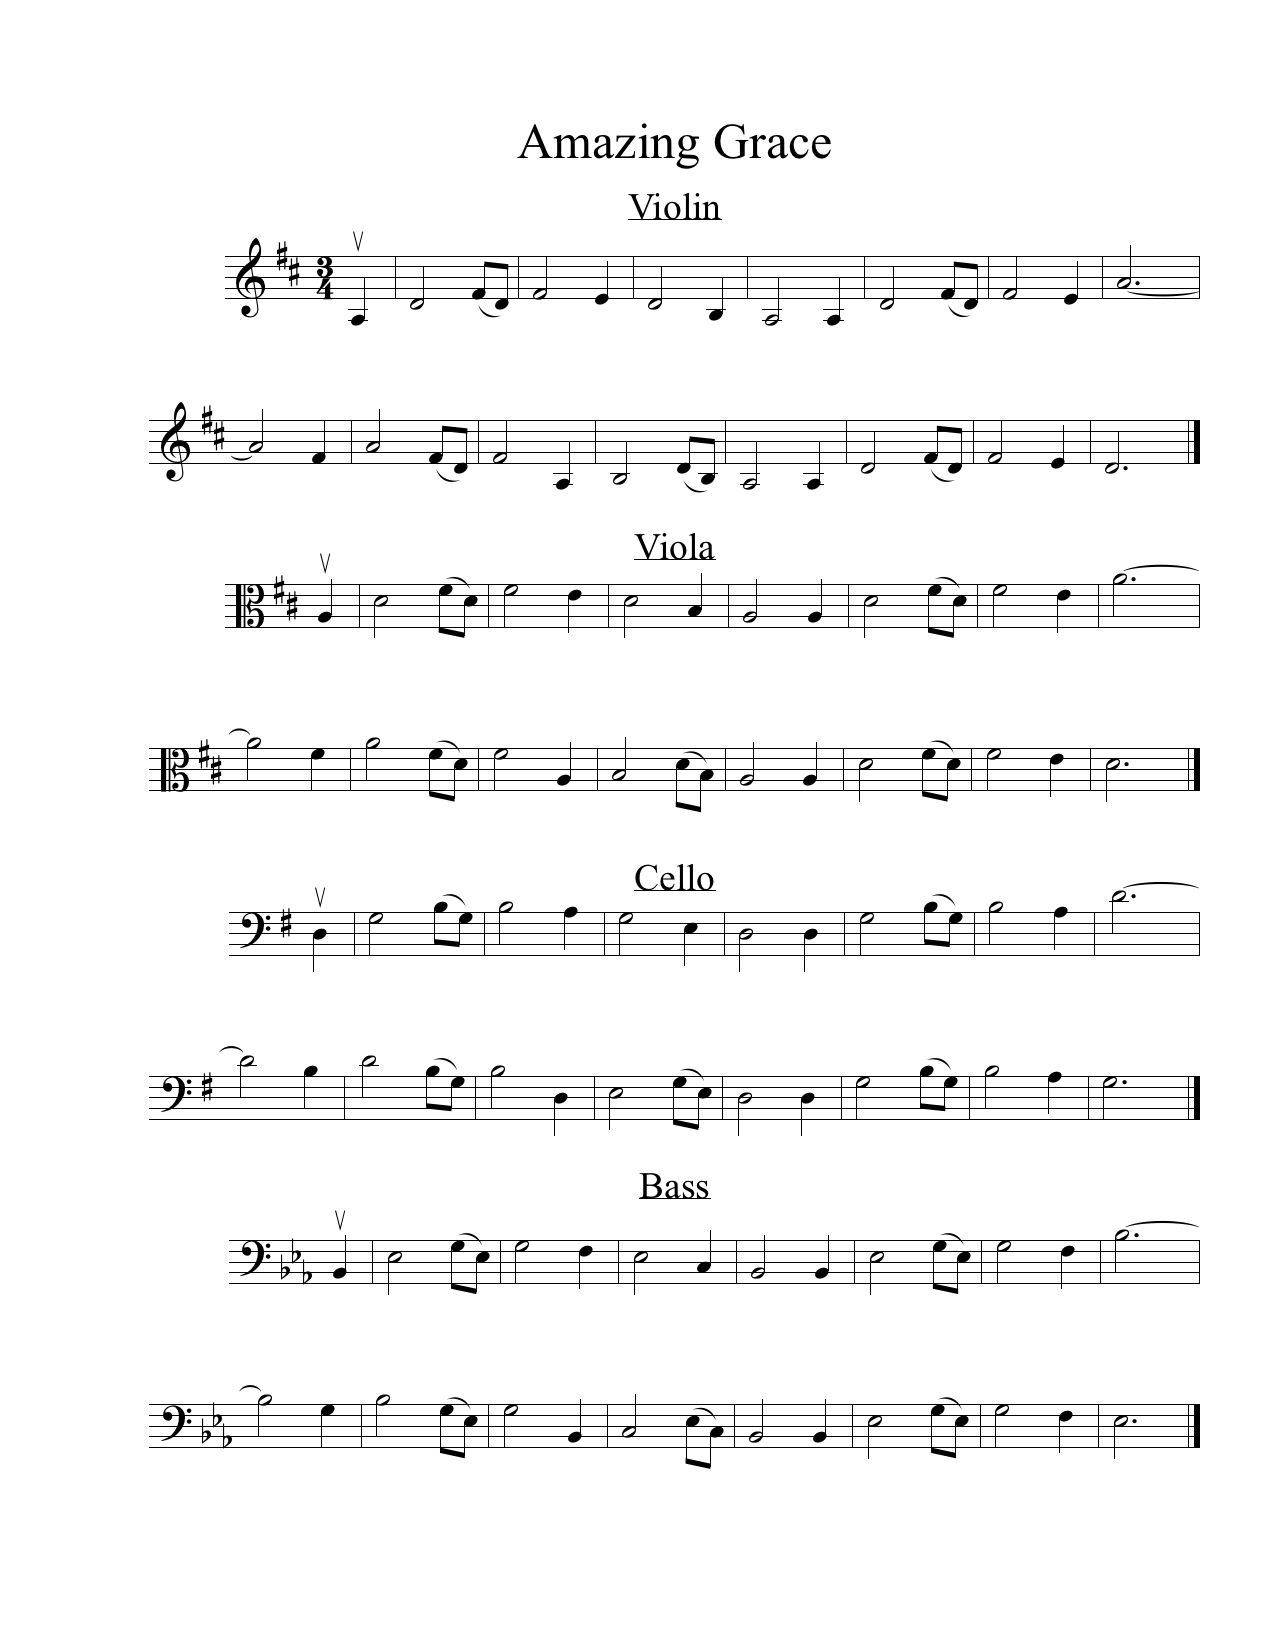 Amazing Grace Sheet Music and Tablature : The String Club